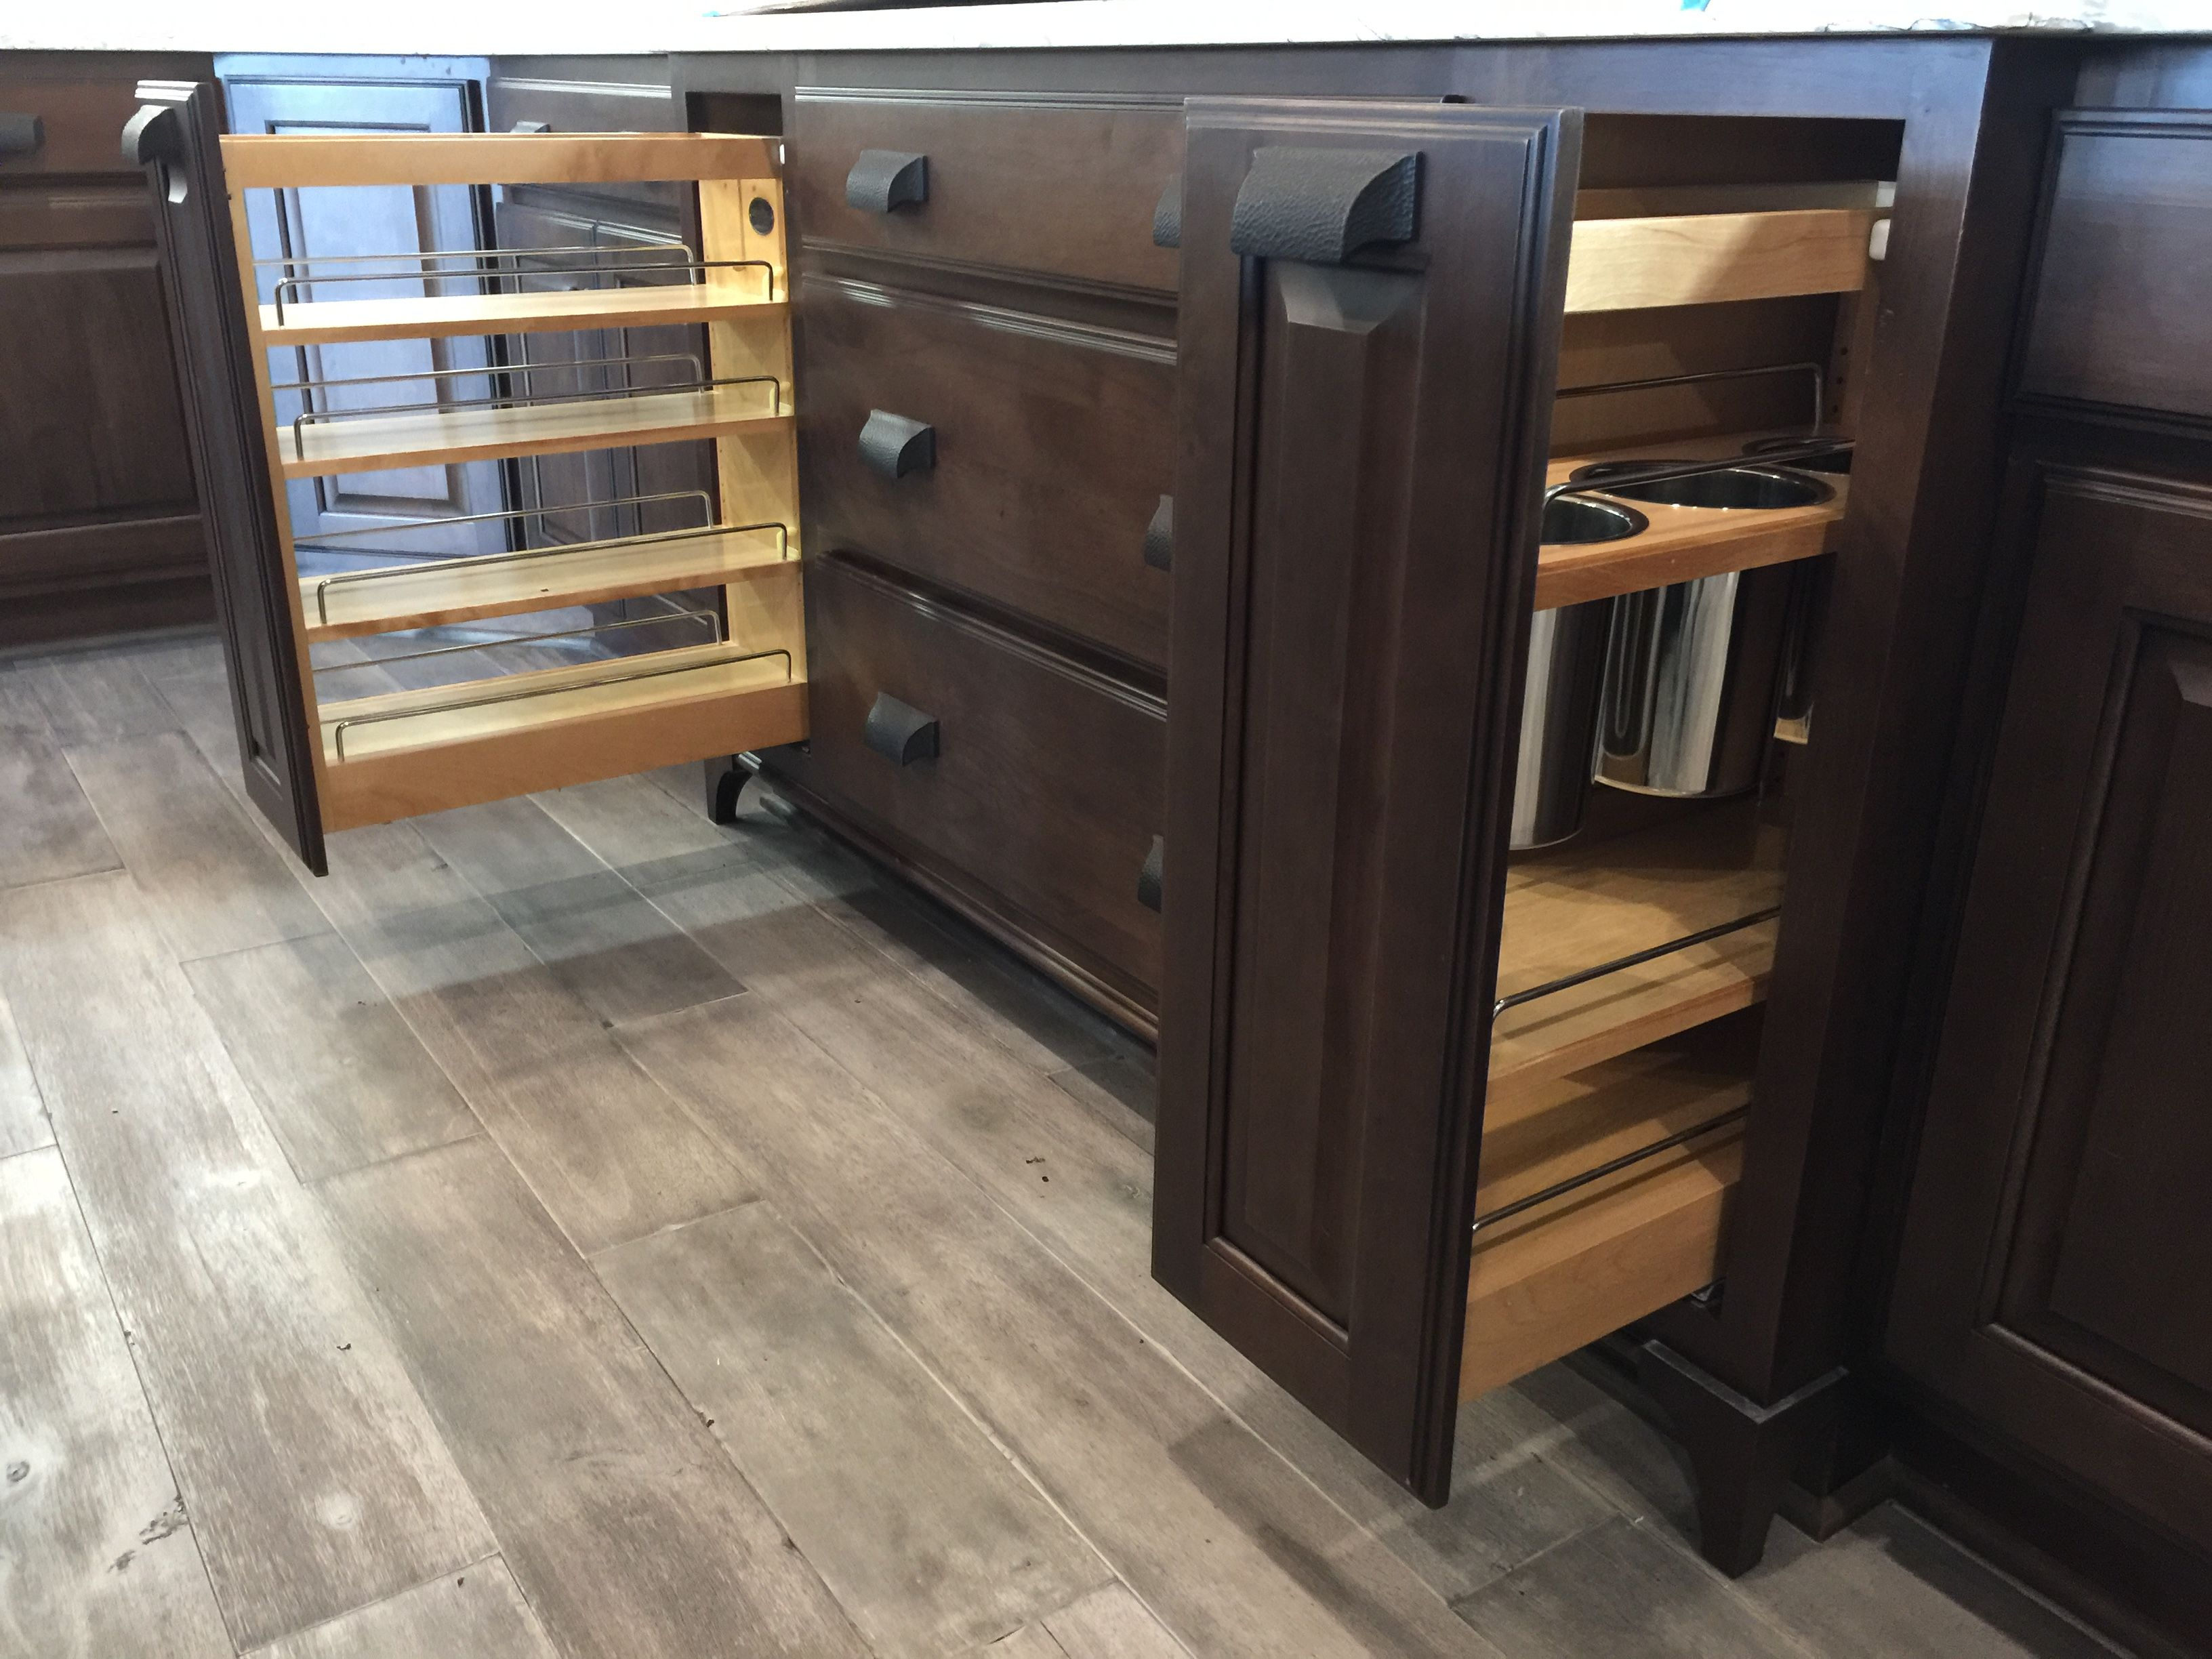 Pullout Spice Cabinet And Pullout Utensil Cabinet Learn More Builder Preferred Cabinetry Kitchen Storage Solutions Kitchen Bathroom Remodel Utensil Storage